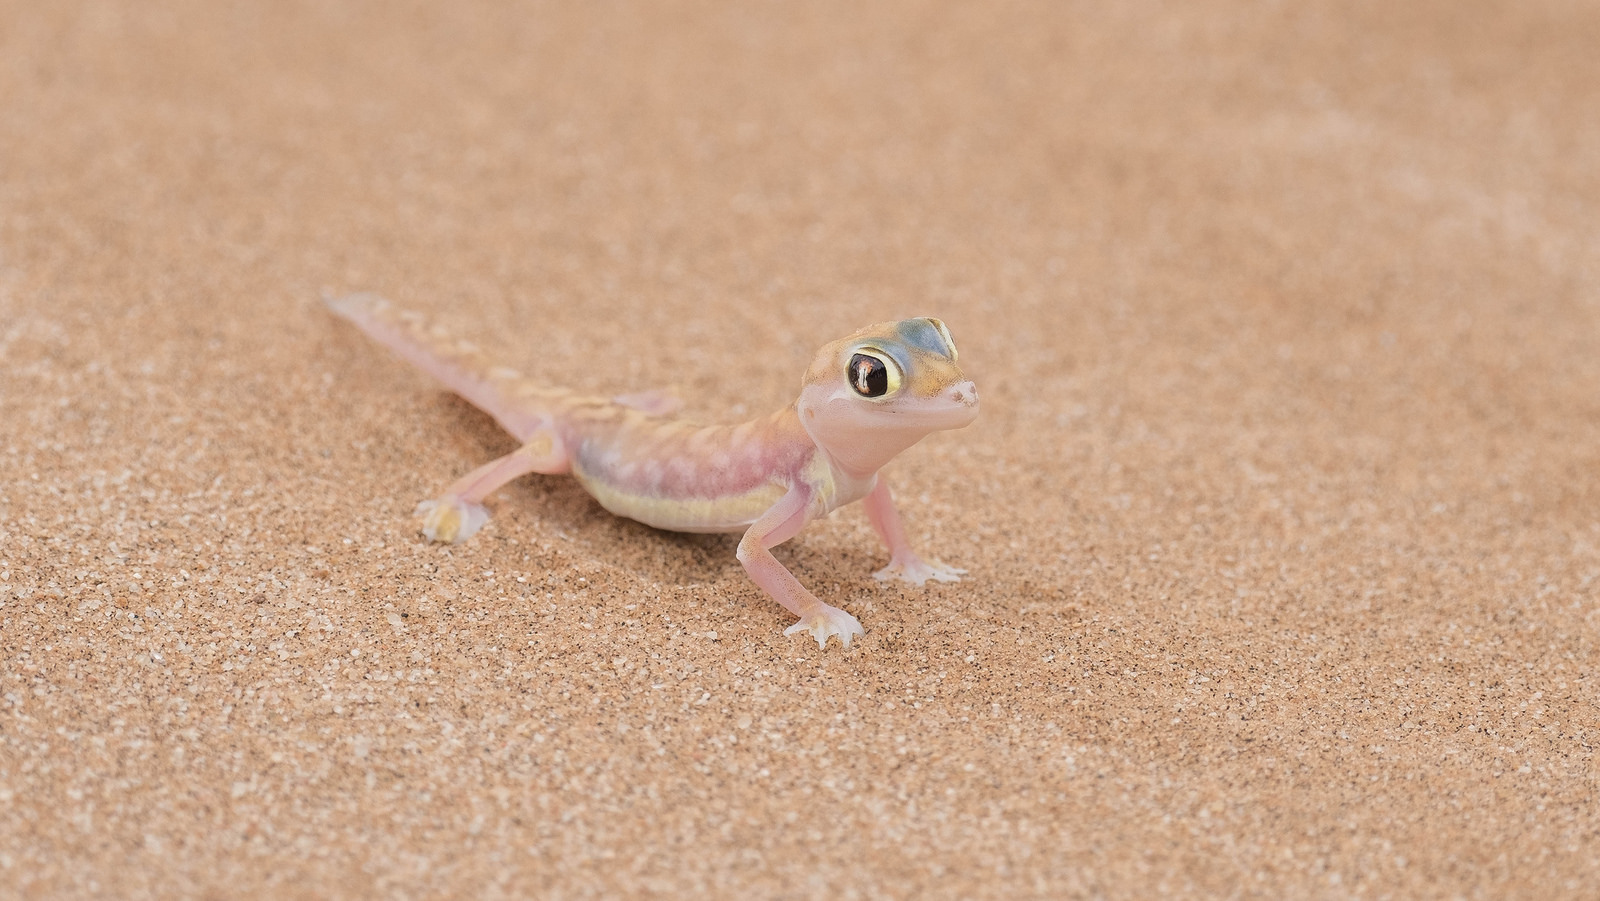 Web Footed Gecko Cutest Gecko Ever Drinks Water From Its